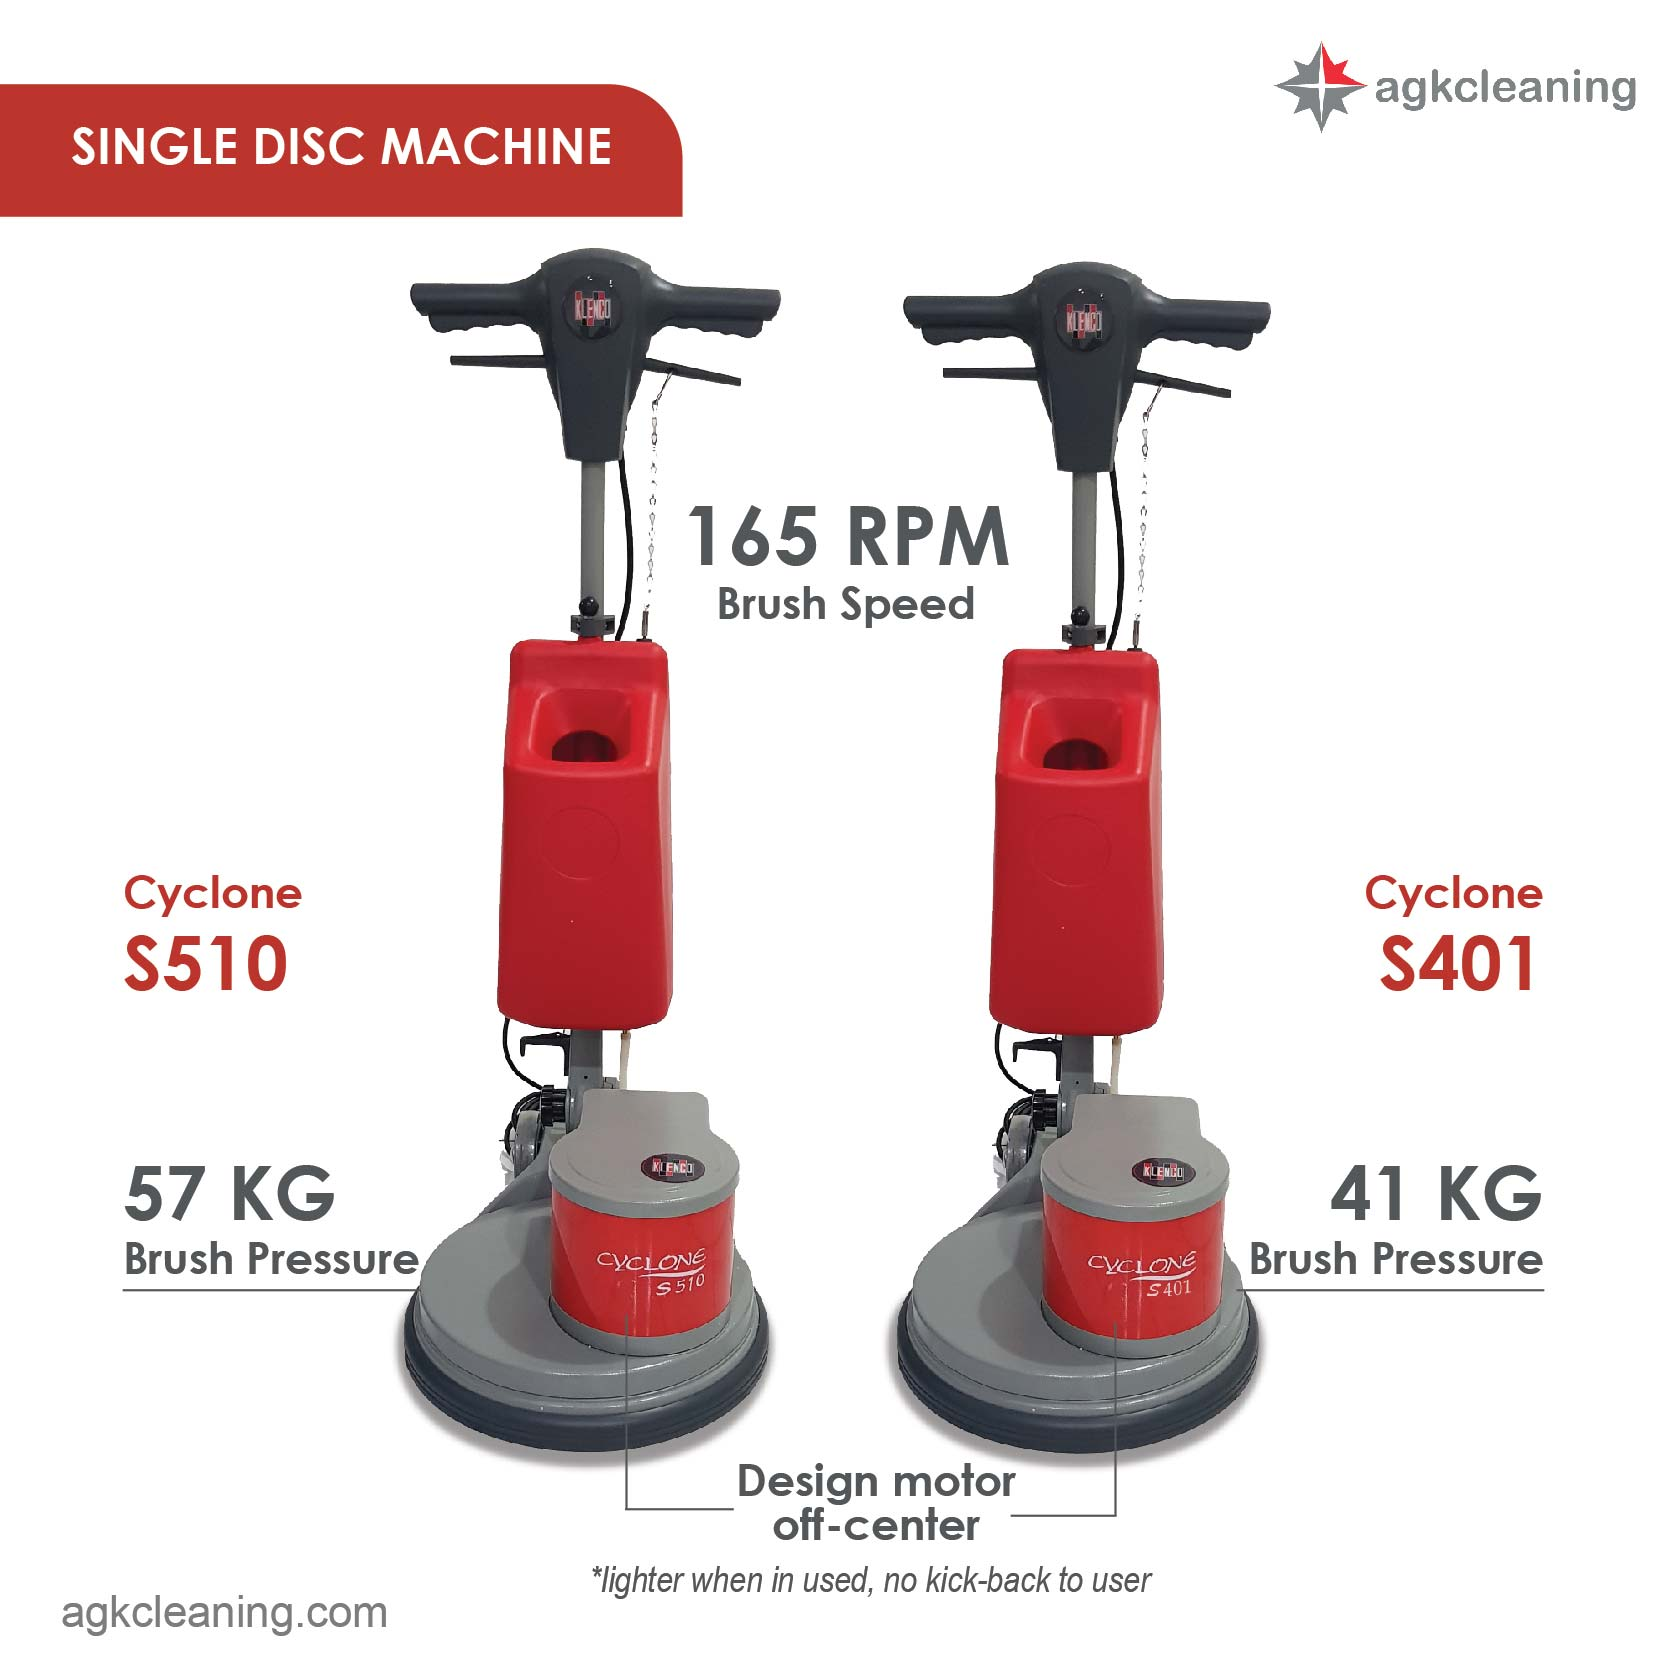 <span style='color:#000;font-size:18px;font-weight:700;'>CYCLONE S510</span><br><span style='color:#000;font-size:14px !important;font-weight:400!important;'>Single Disc Machine (57KG)</span>